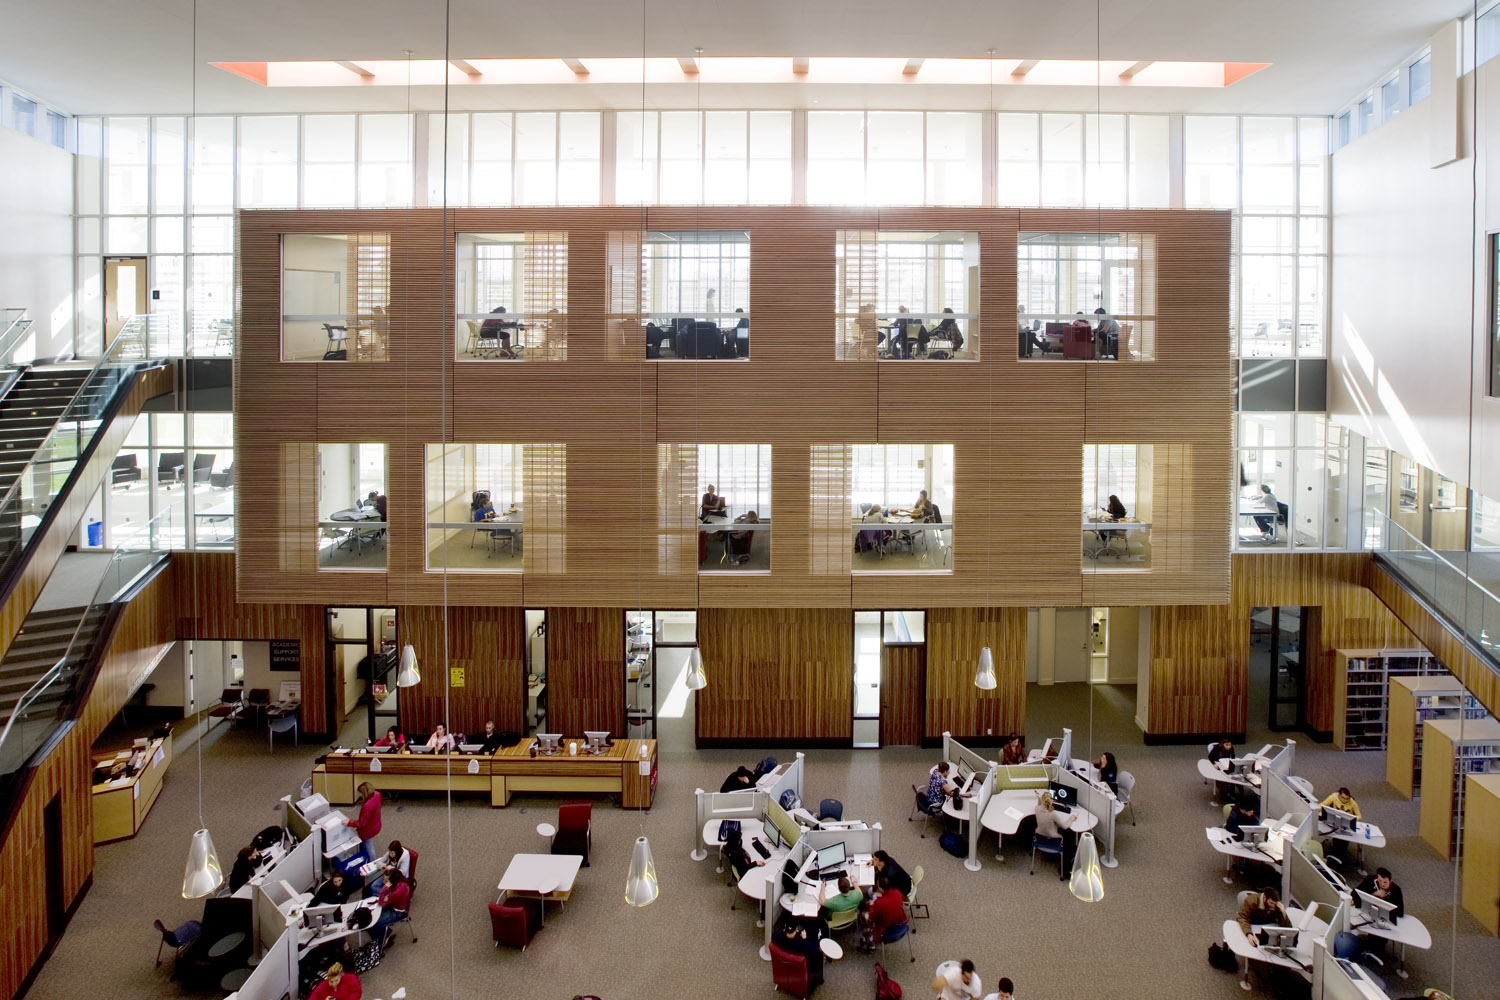 Research & Information Commons